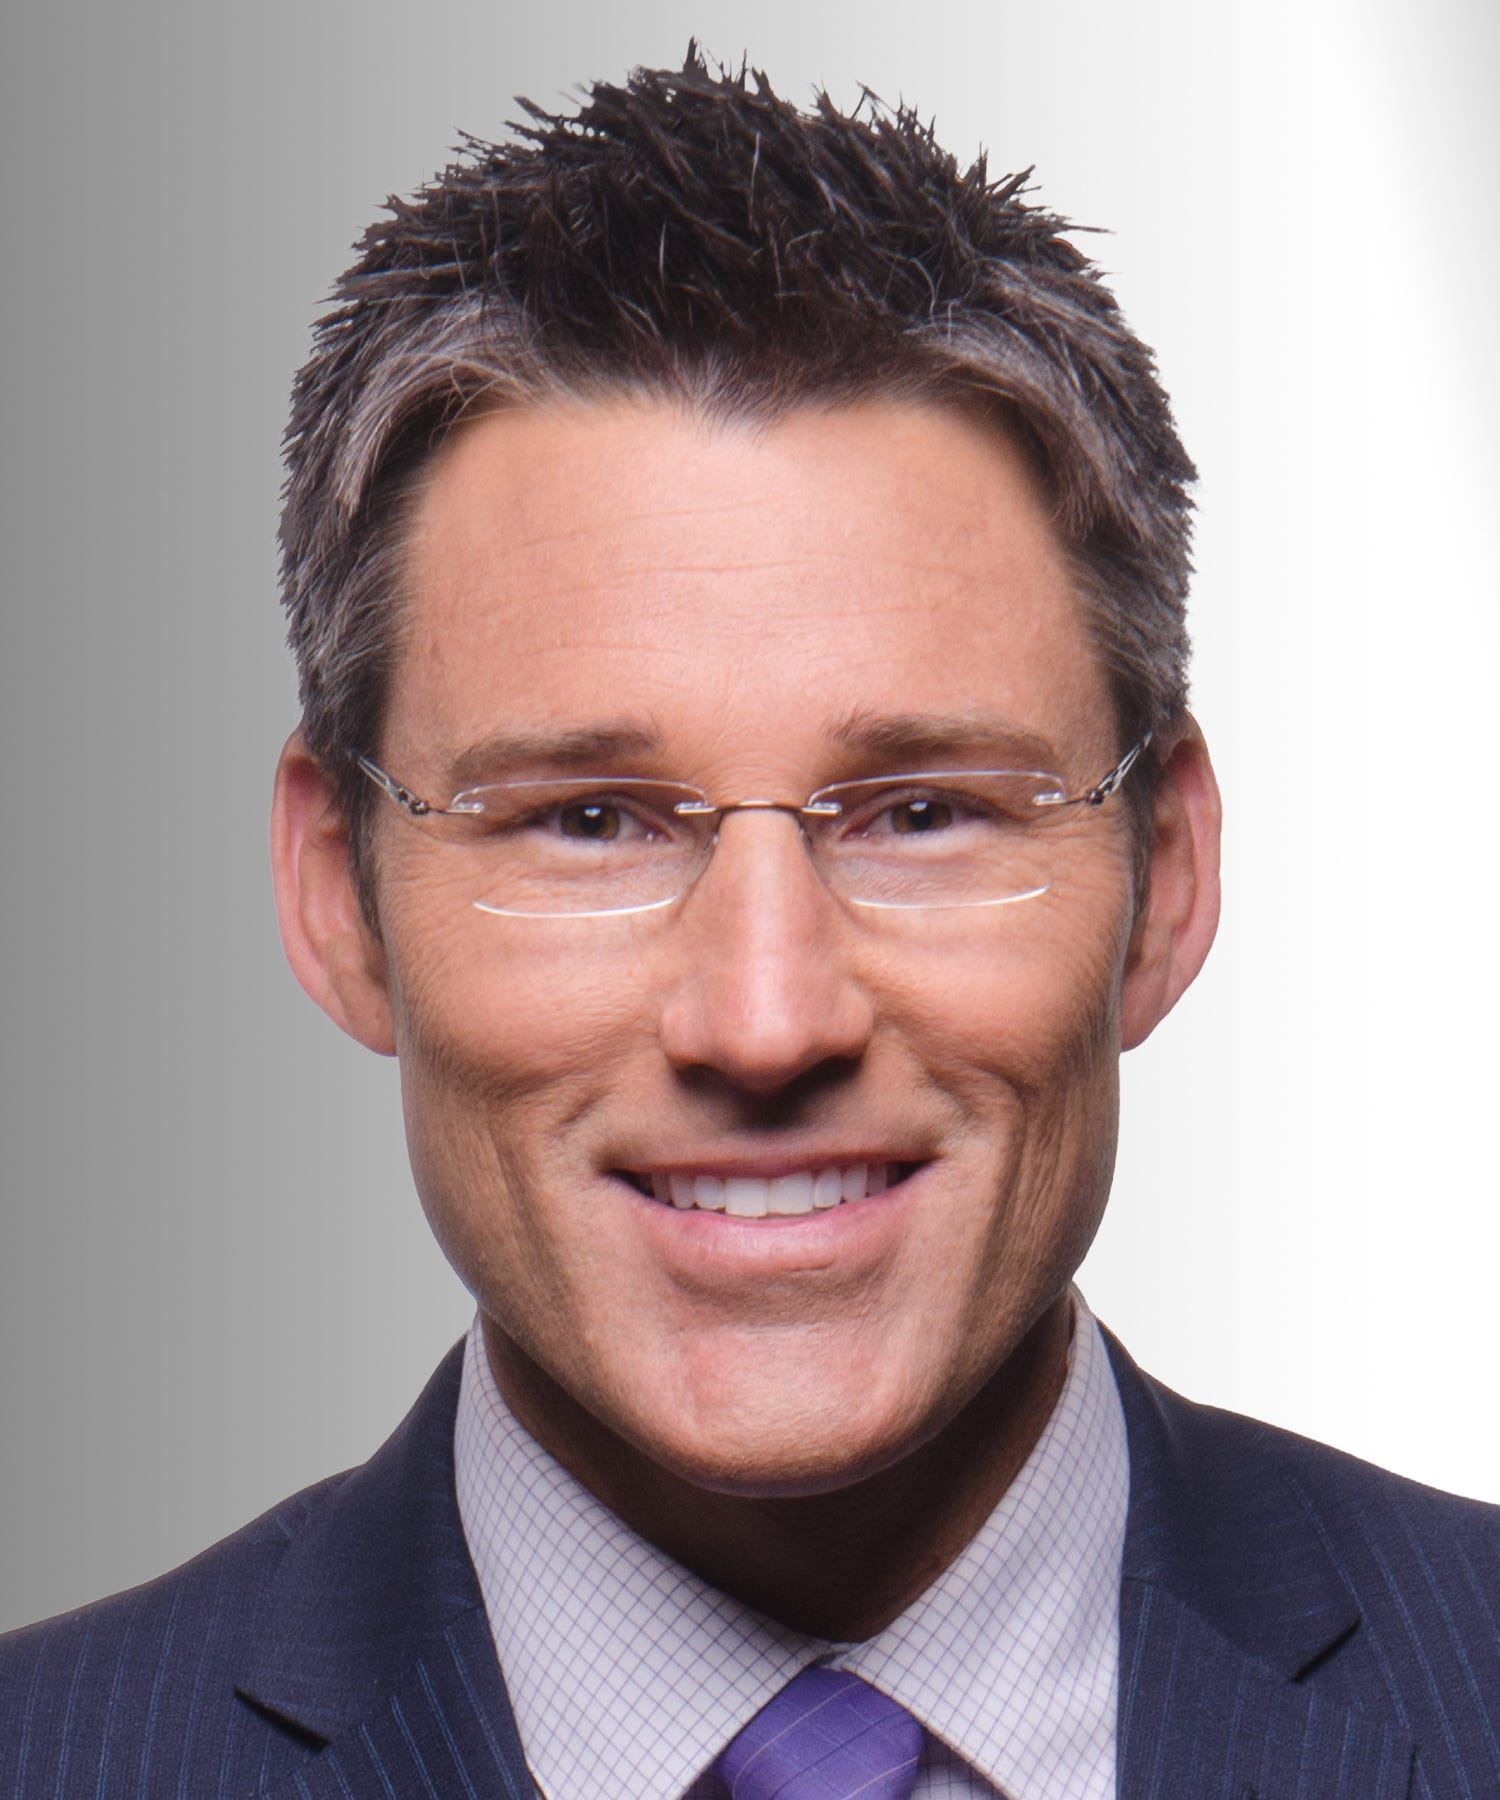 Detroit news reporter fired for sexual misconduct